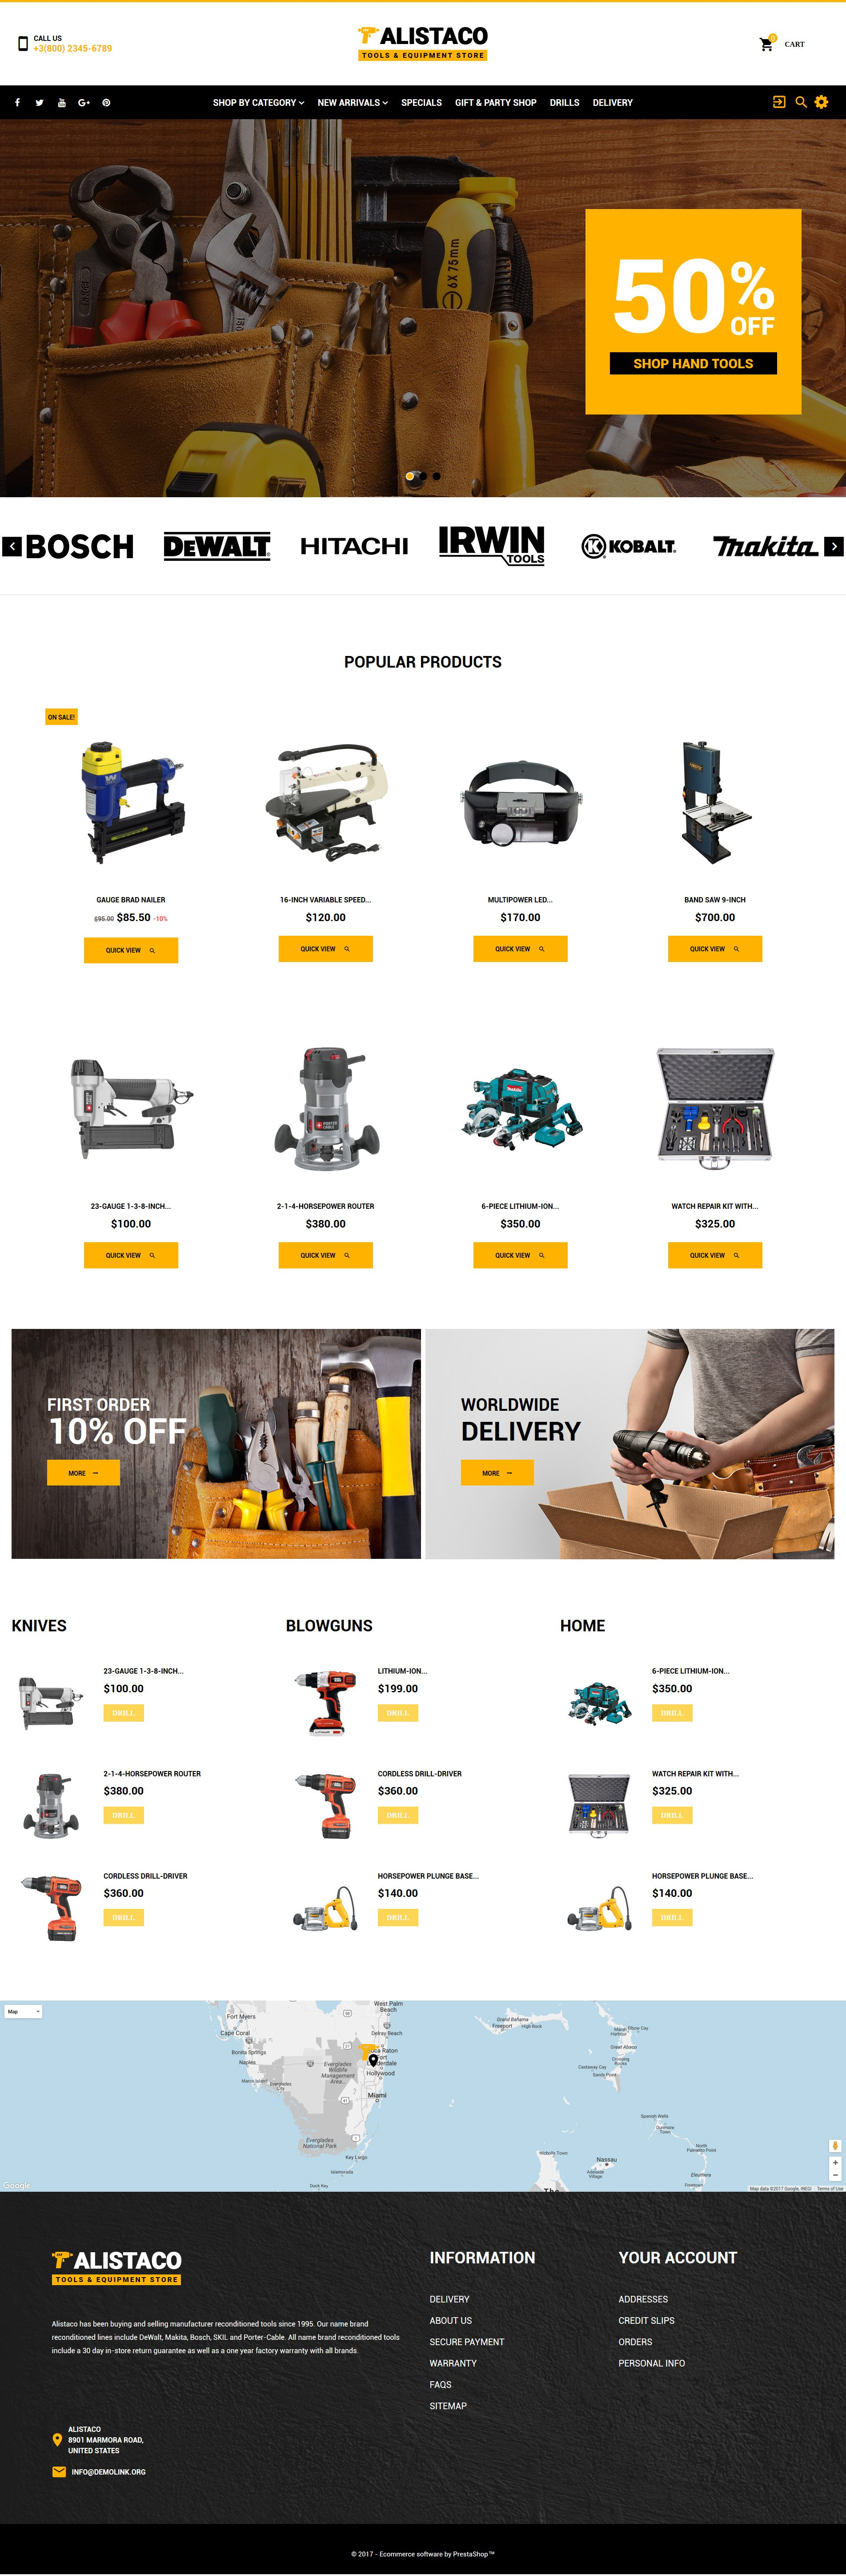 Website Design Template 62363 - store online shop purchase industrial special accessories products power profile standard drill gardening motor master cordless air electric pliers advice dealership repair rent cutting clamps automotive remover puller